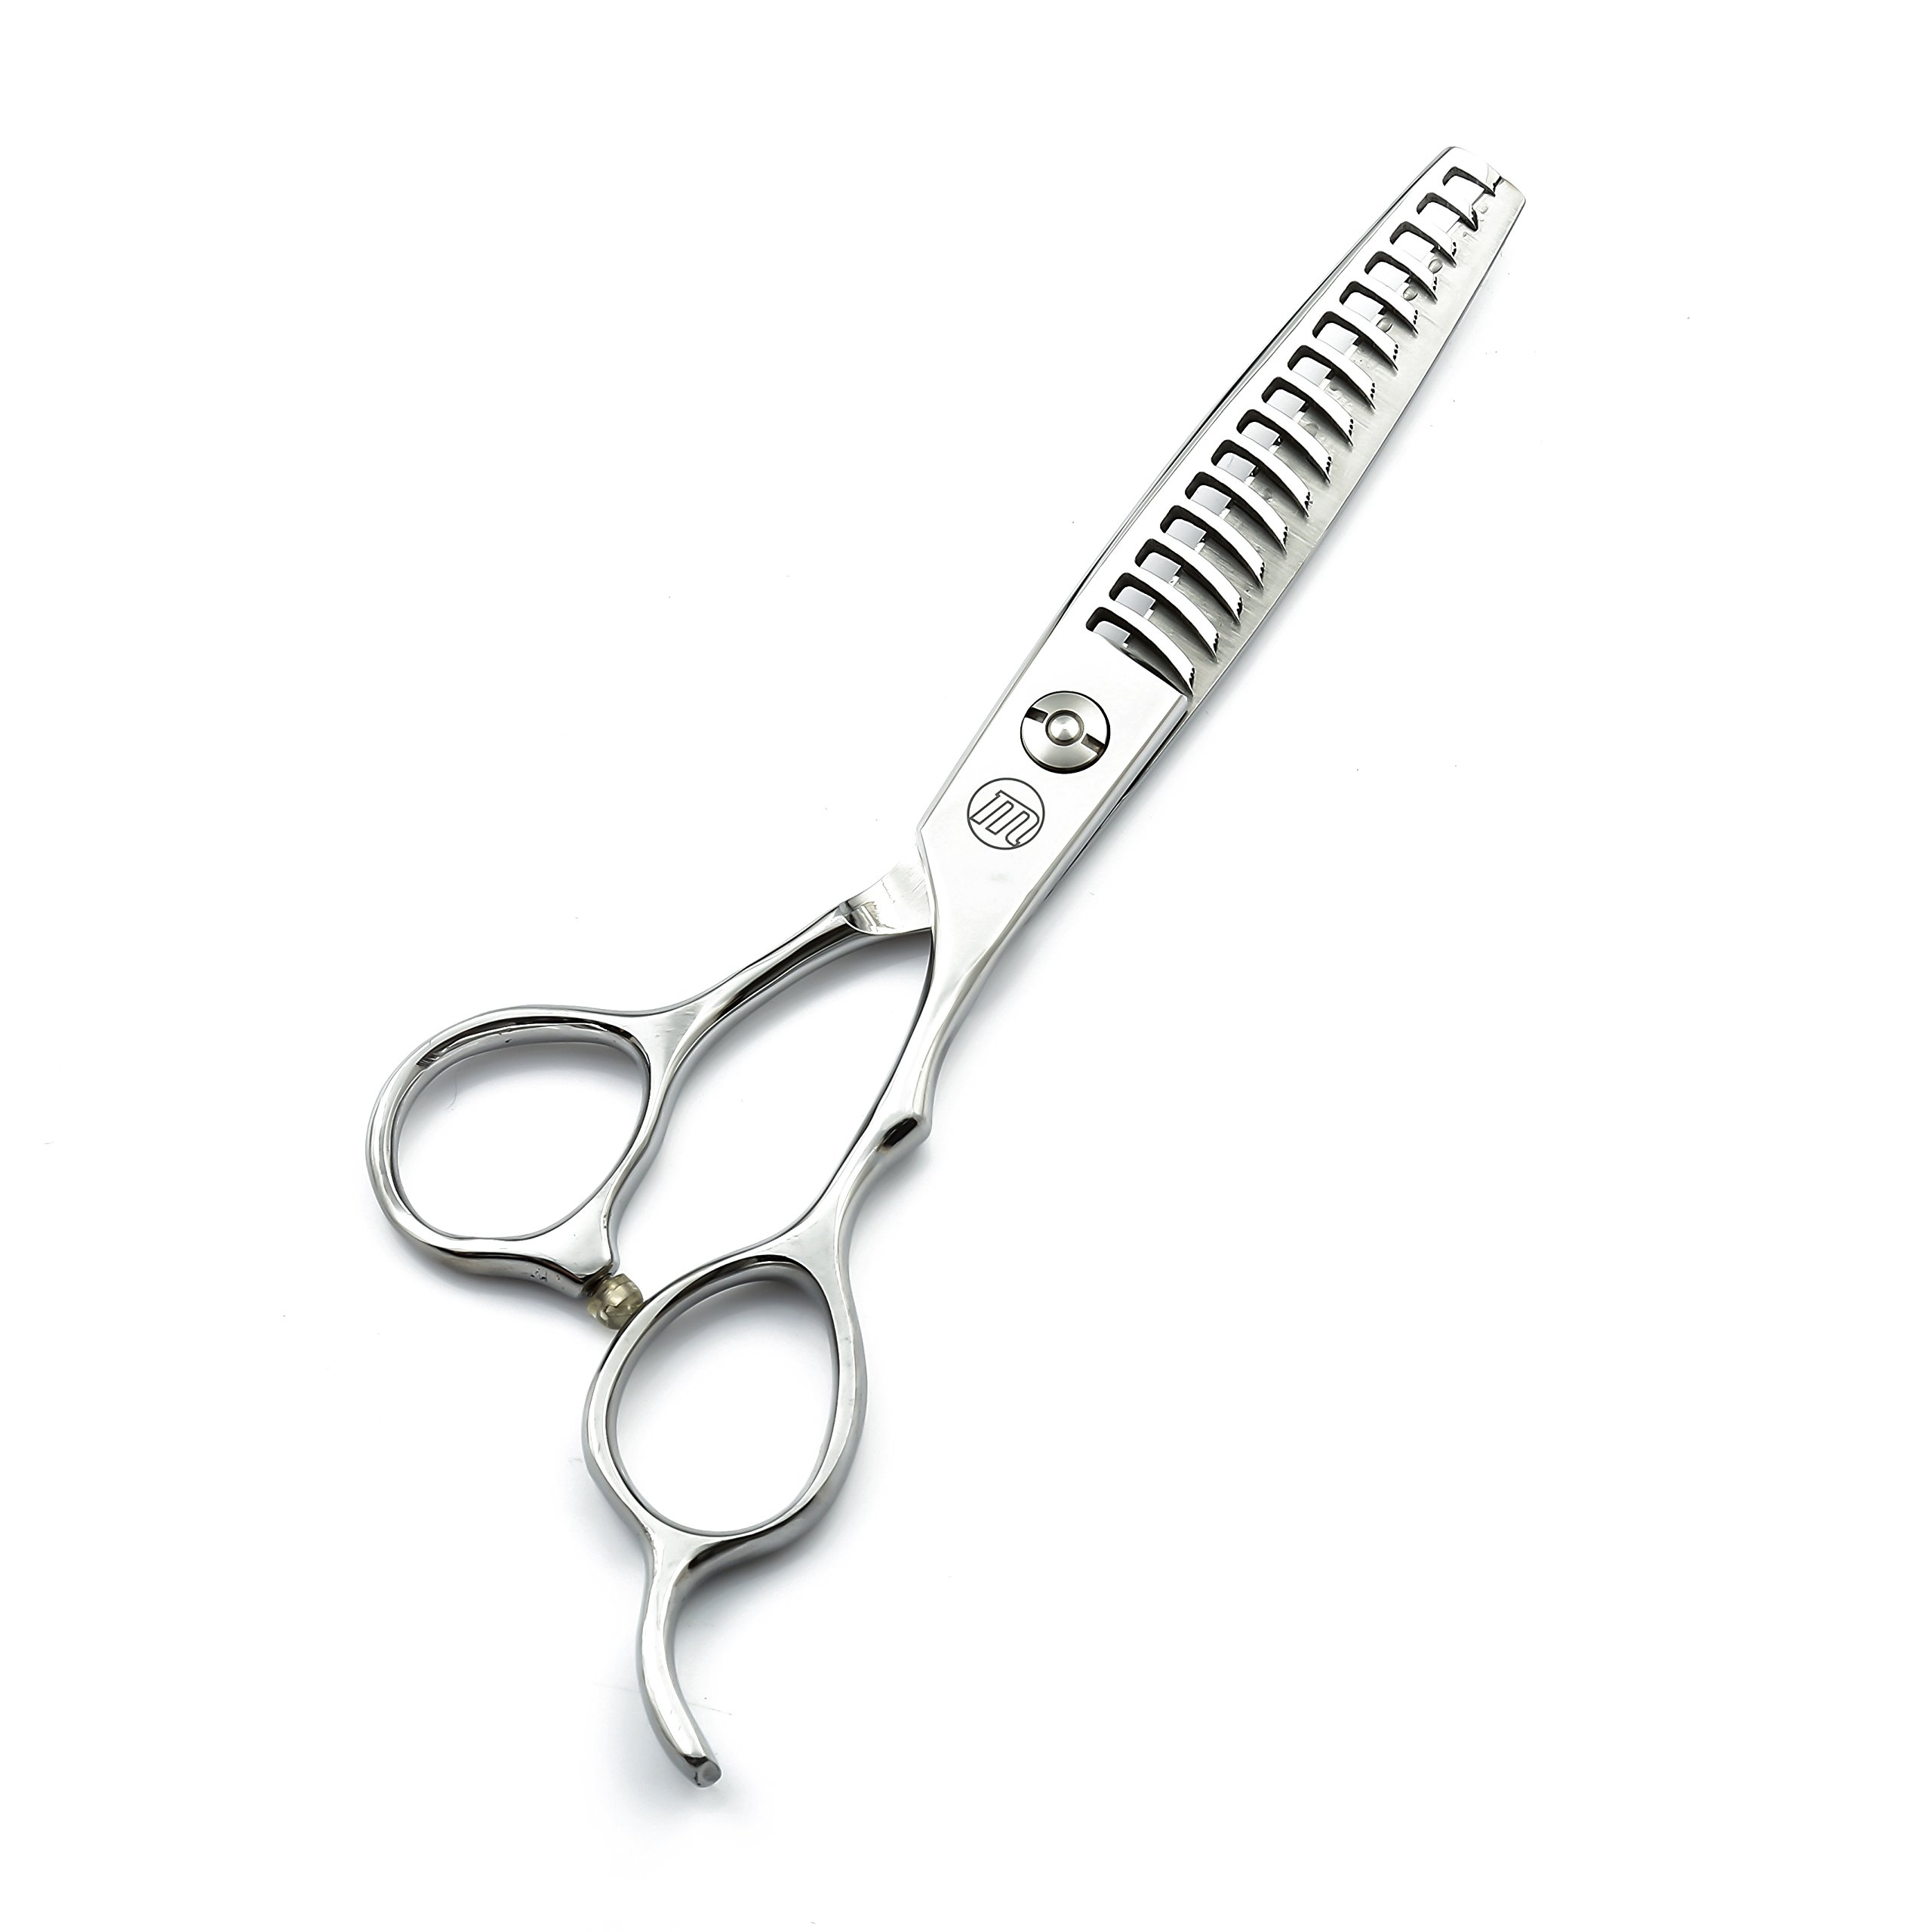 6.0'' Professional 15/30 Teeth Razor Edge Barber Scissor Hair Thinning/Texturizing Shear with Bag by Moontay (15 Teeth)